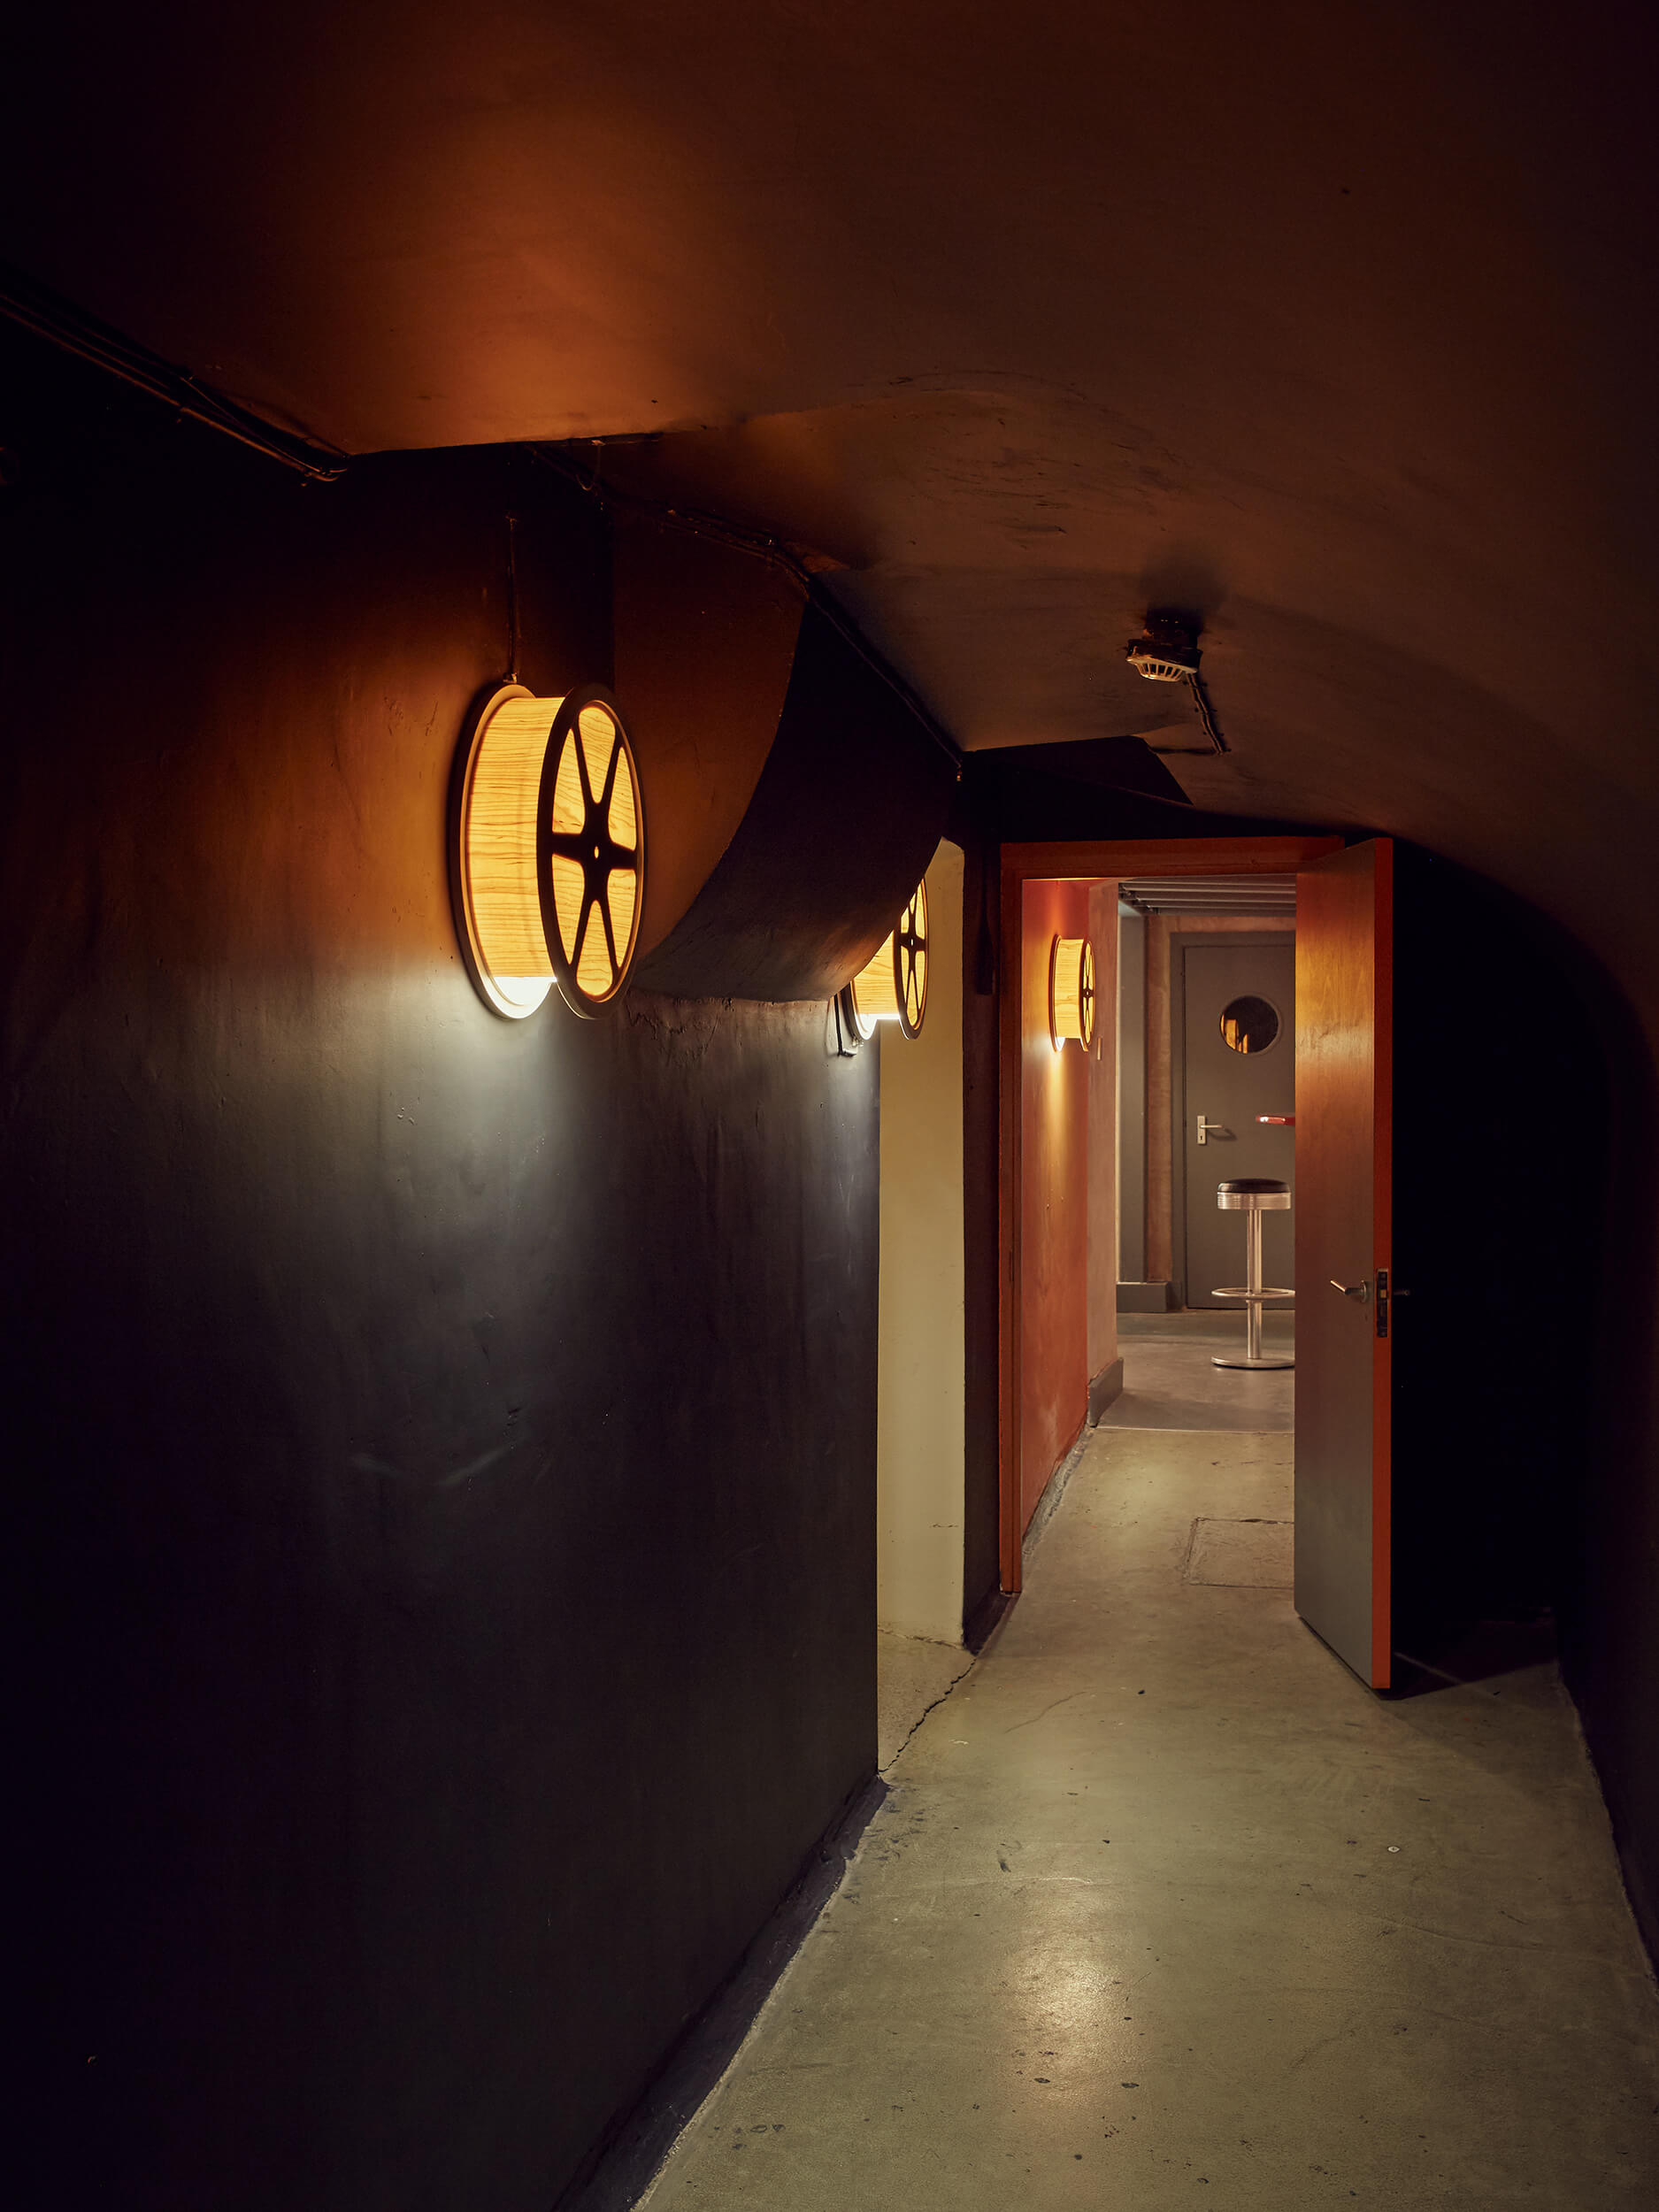 The corridor leading to the bar, illuminated with film reel sunset lamps.